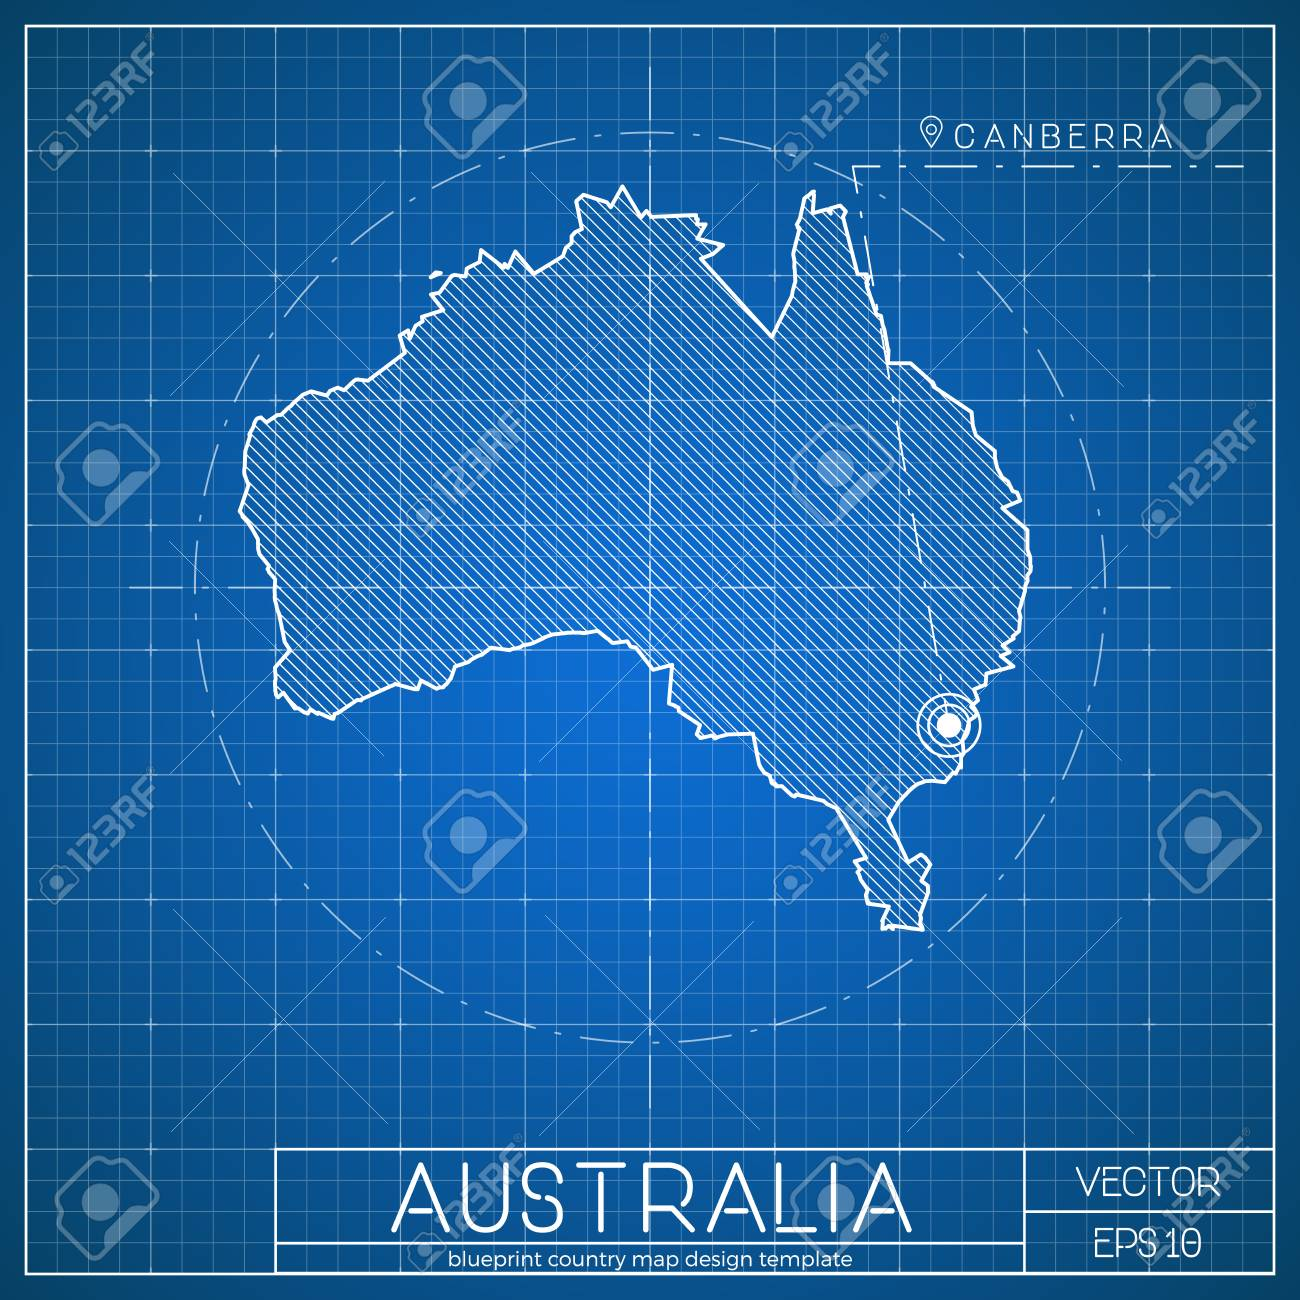 Map Of Canberra Australia Blueprint Map Template With Capital City Canberra